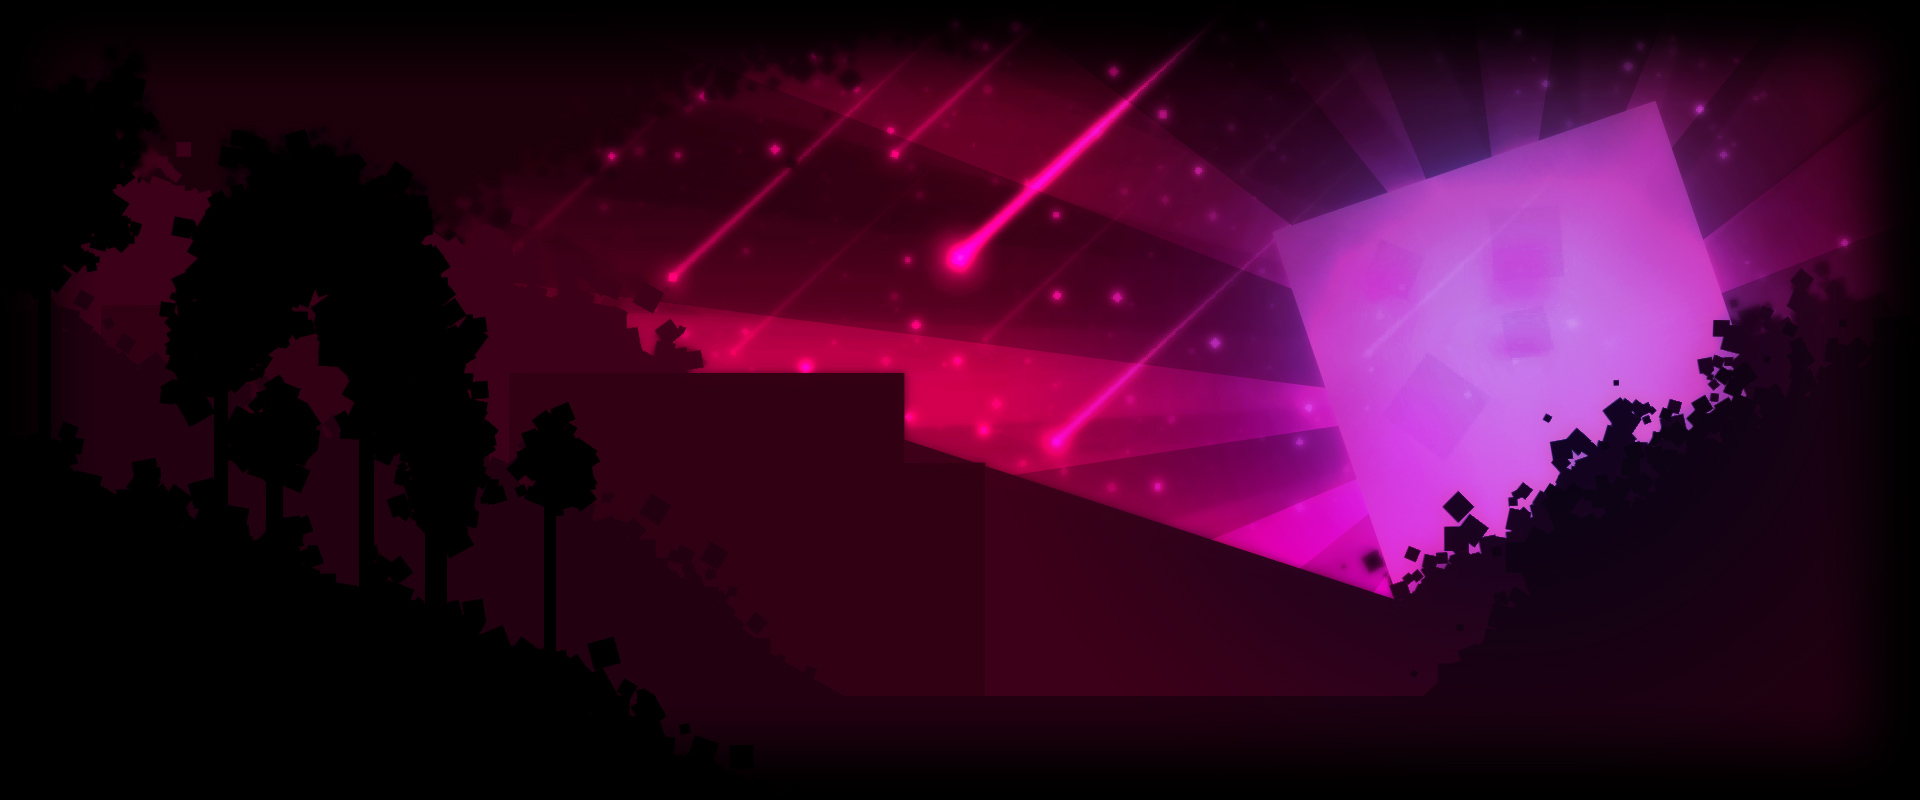 Cute Pinkish Backgrounds 3 Steam Community